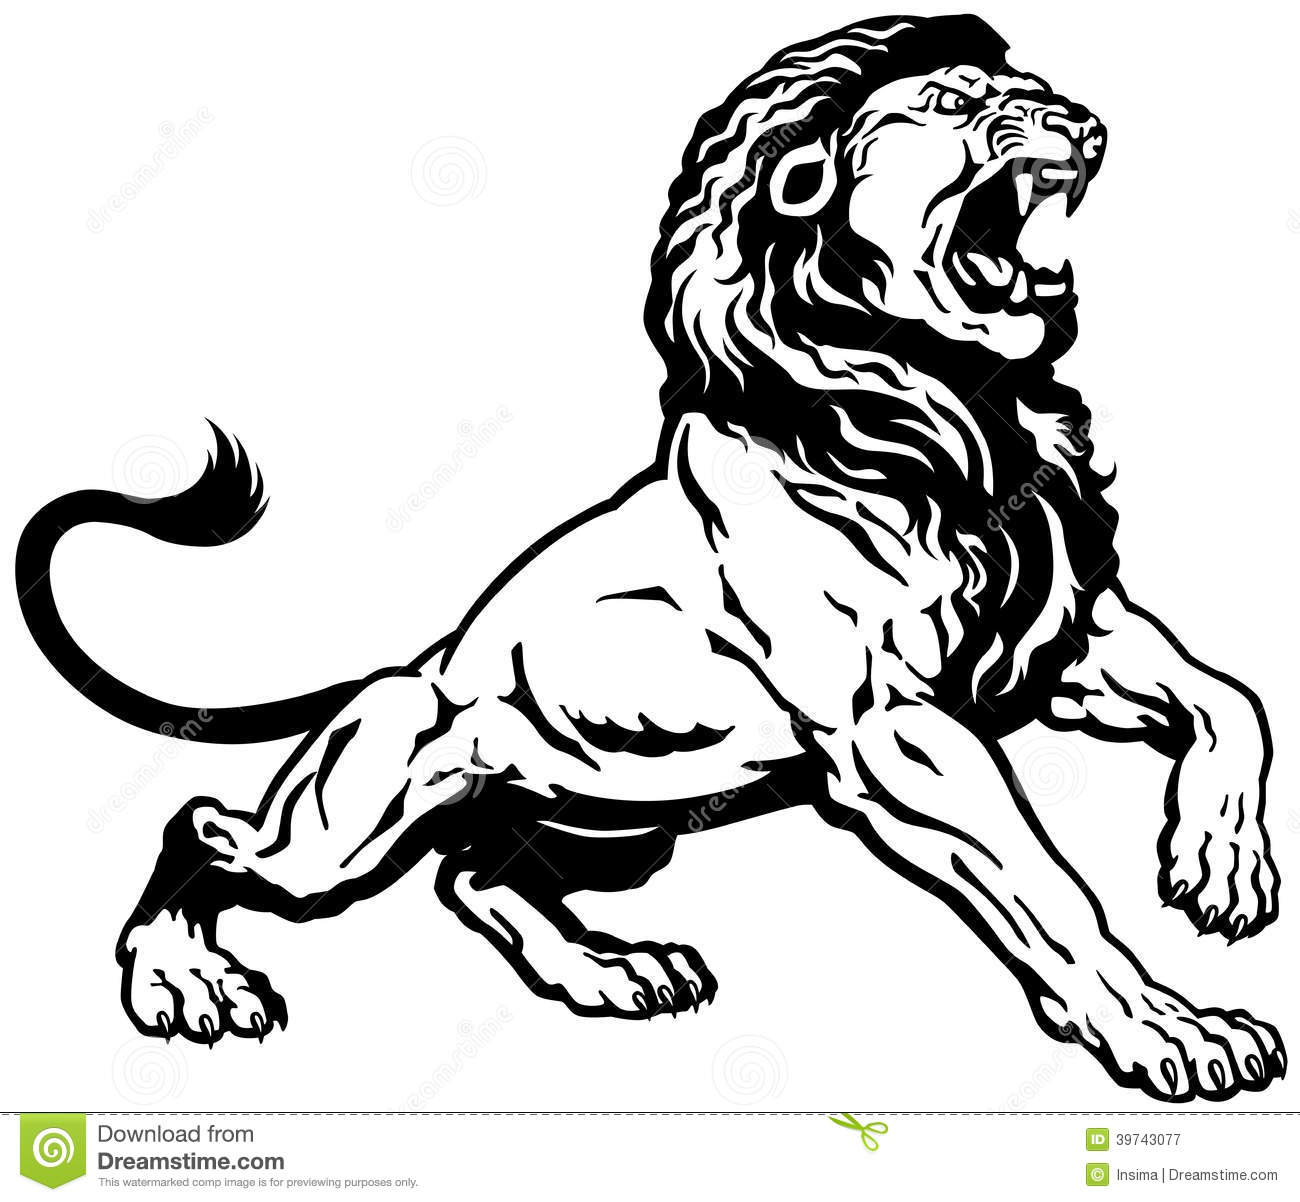 70f24f672 Angry lion stock vector. Illustration of creature, male - 39743077